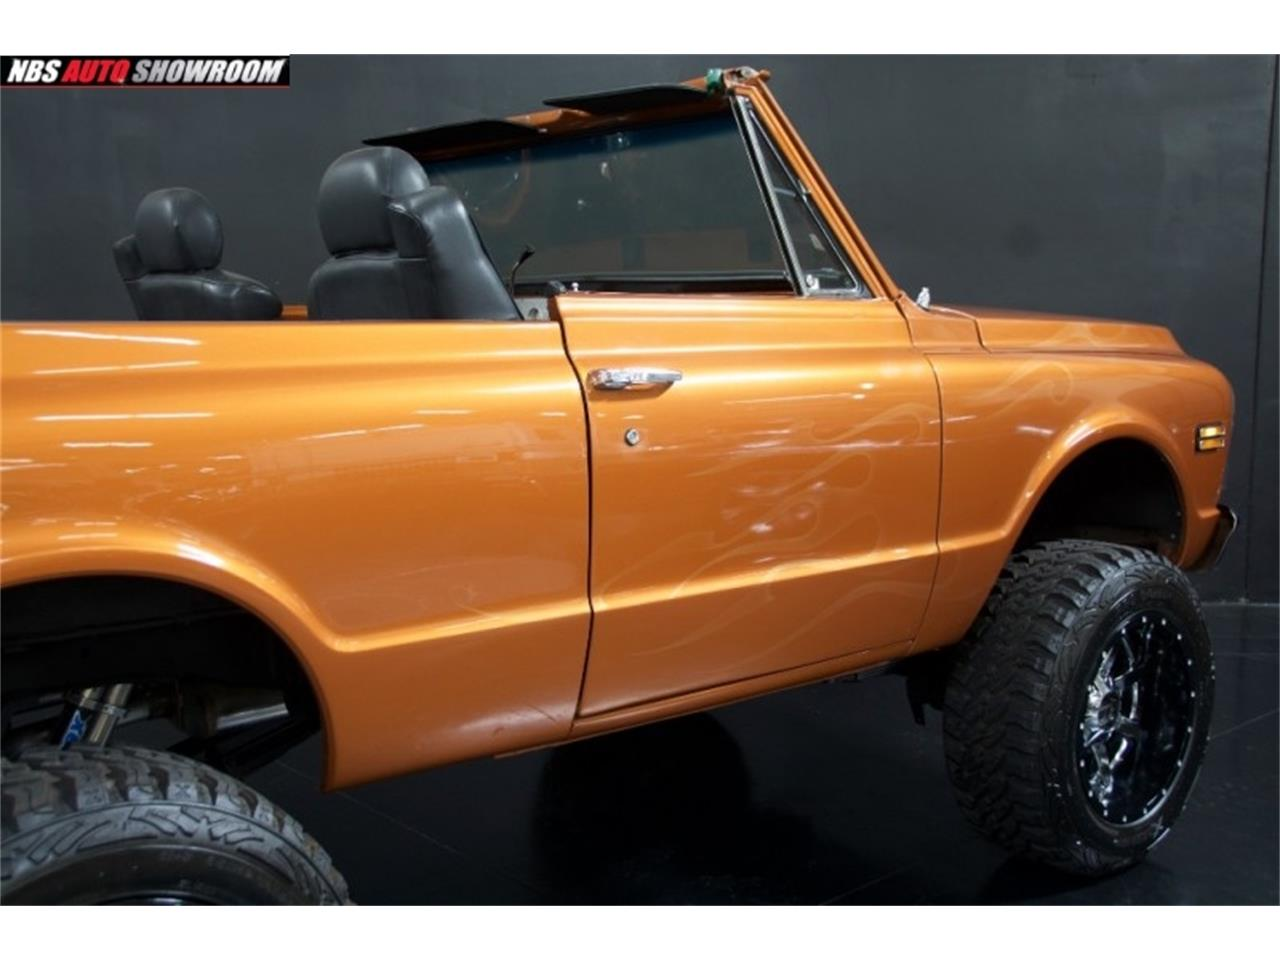 Large Picture of 1970 Blazer located in California - $55,250.00 Offered by NBS Auto Showroom - PR1D